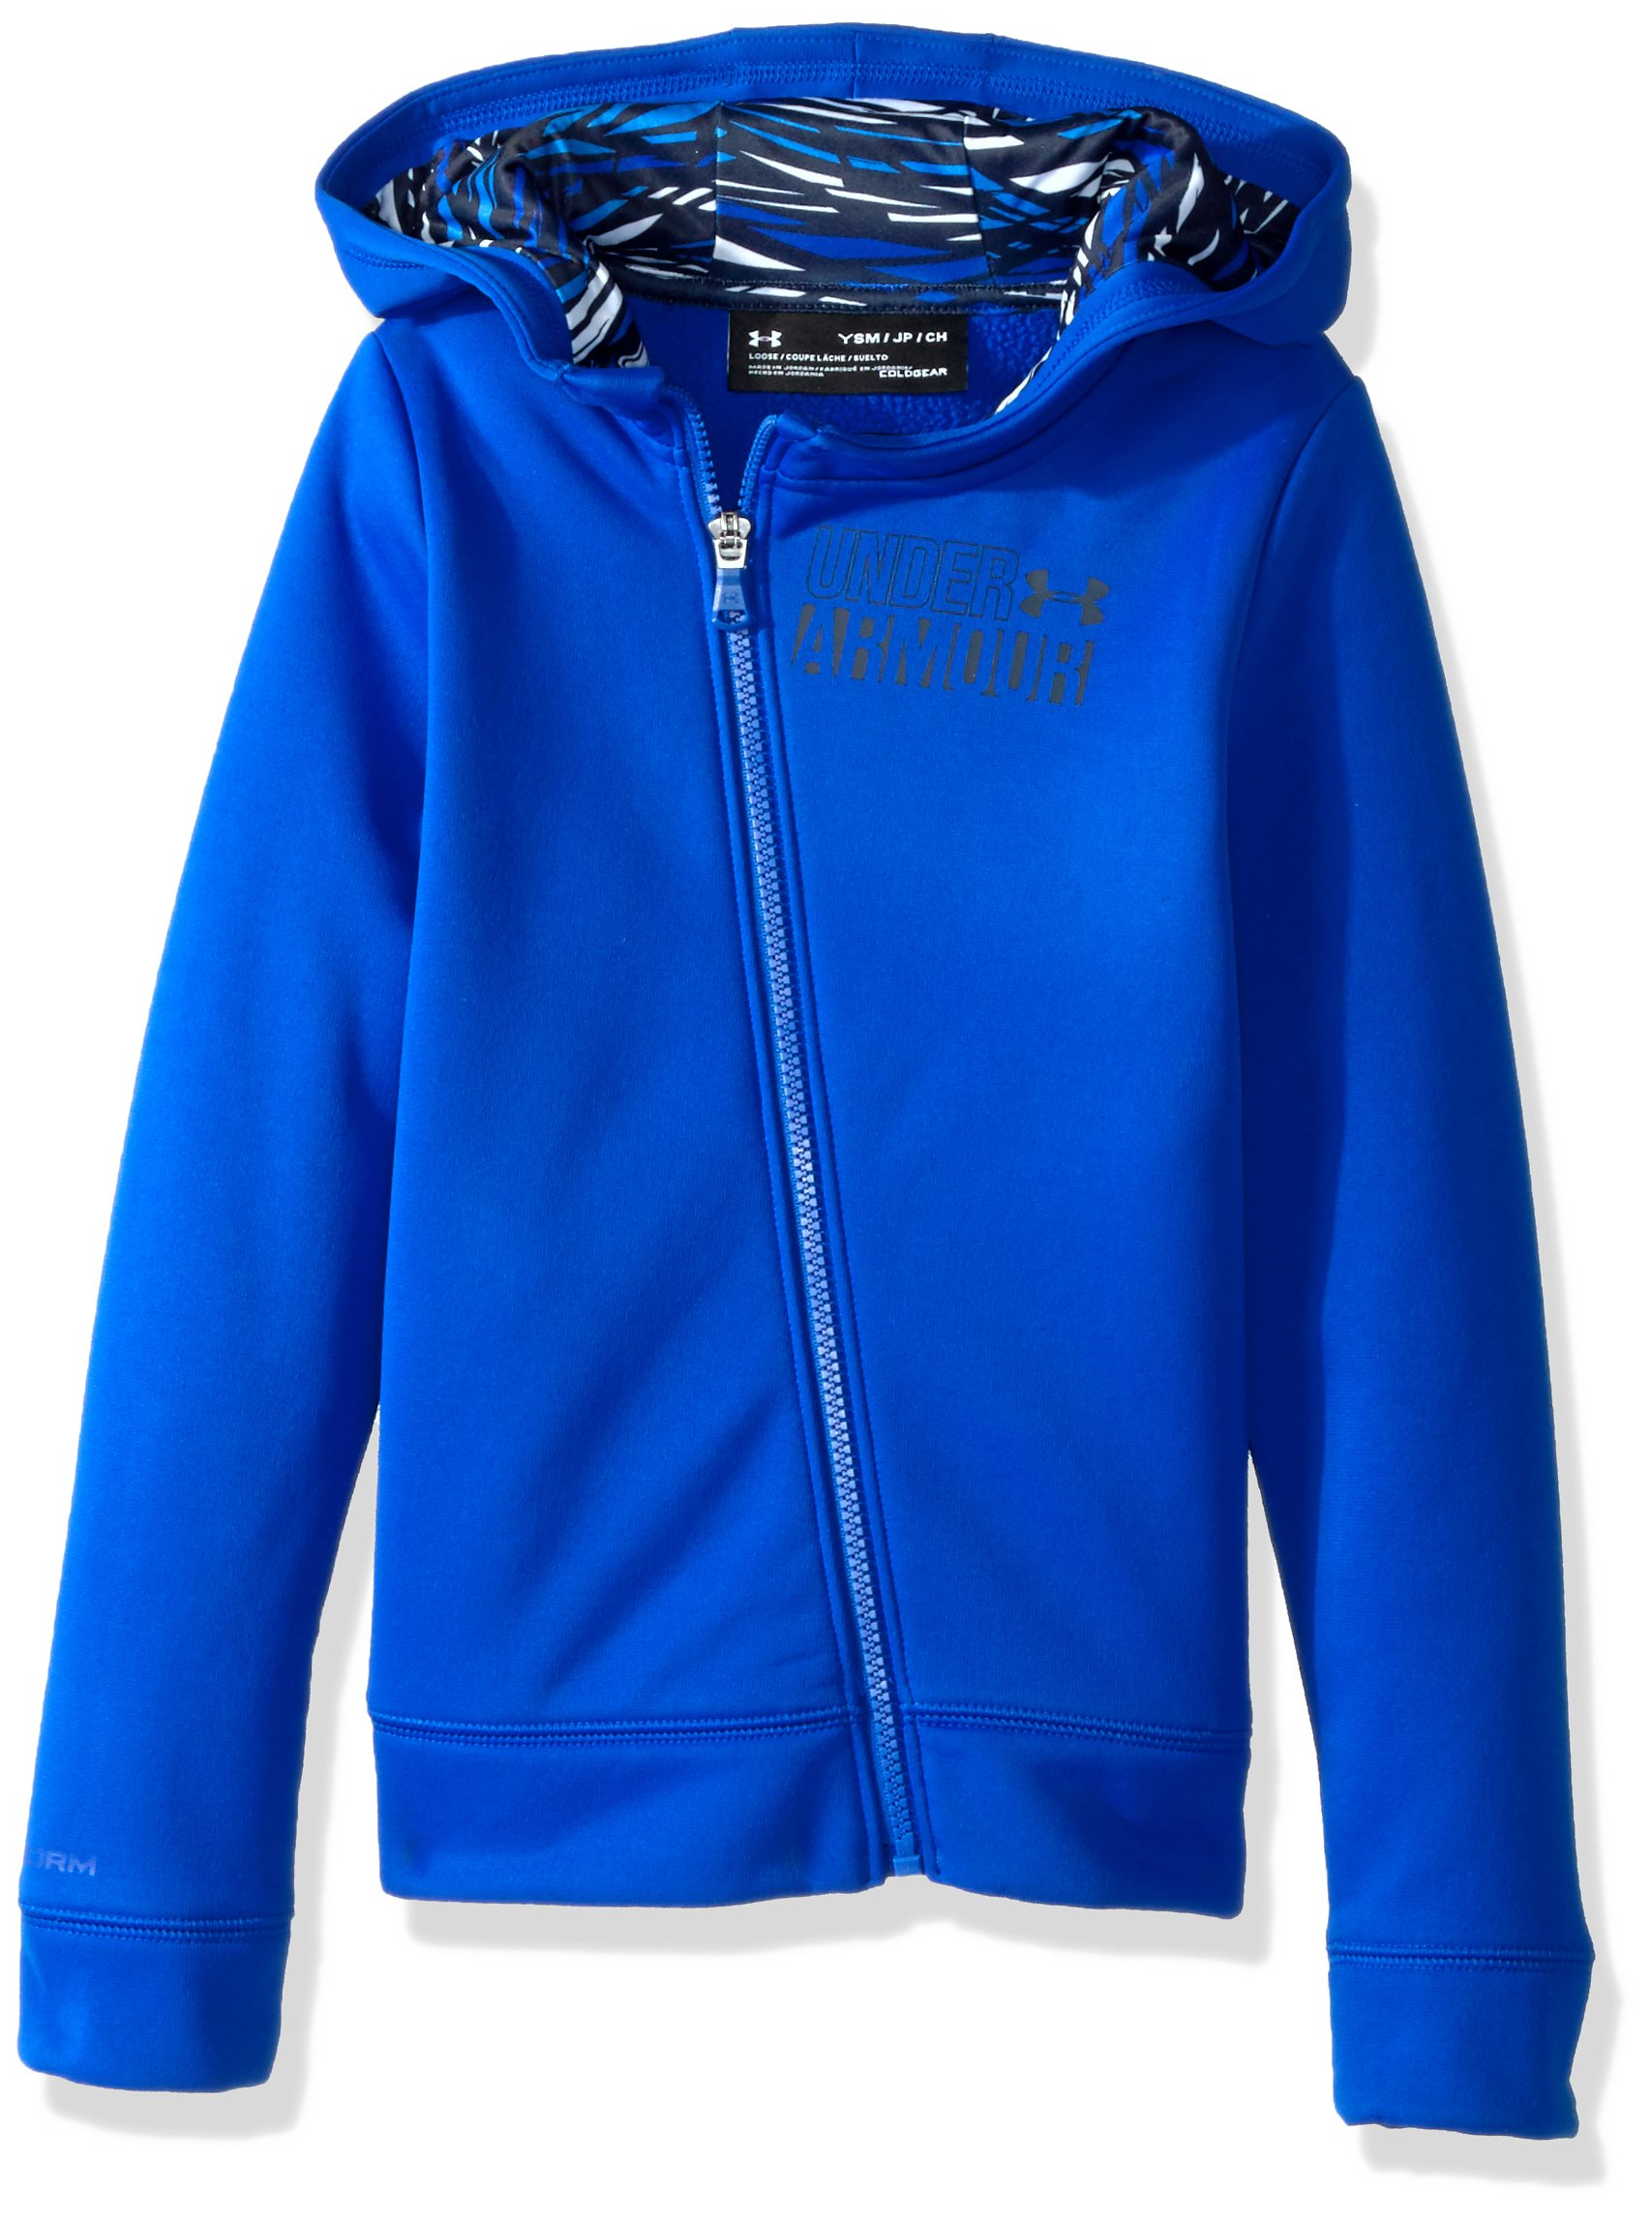 Under Armour Girls' Armour Fleece Full Zip Hoodie,Lapis Blue (984)/Mako Blue, Youth X-Small by Under Armour